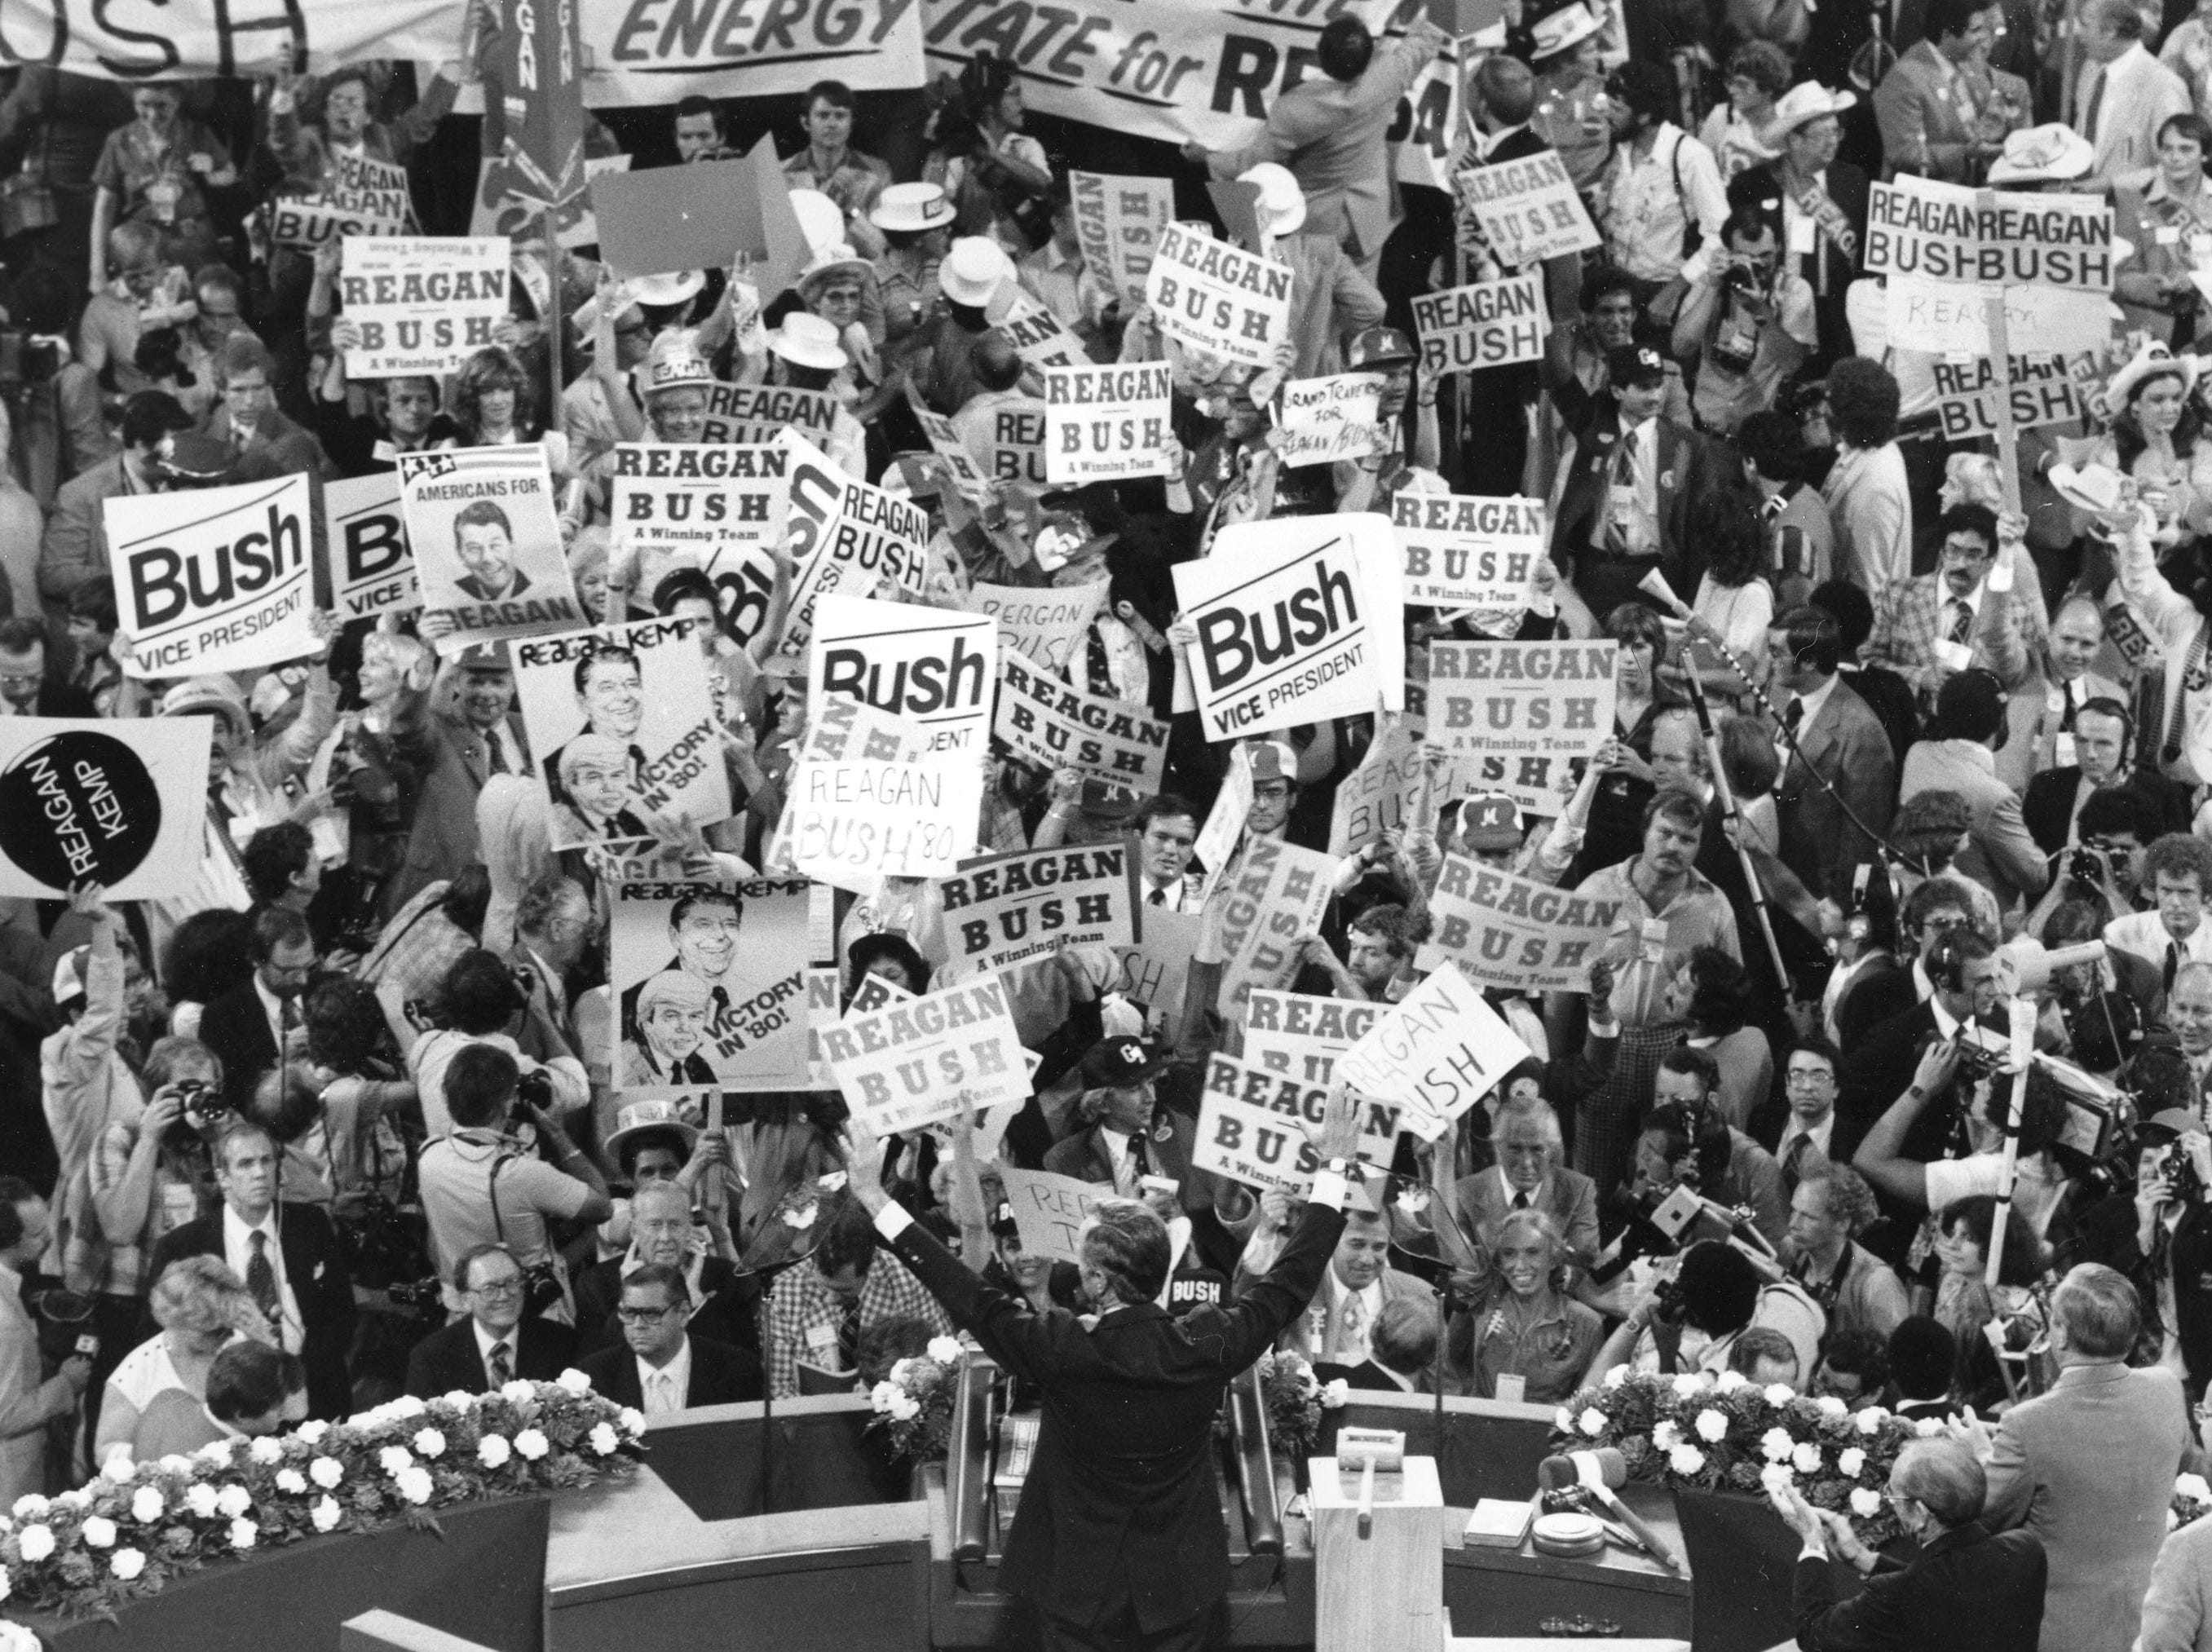 George Bush, foreground, raises his arms as a floor demonstration erupts before speaking to the Republican Convention delegates in Detroit, Mich., Wednesday evening, July 16, 1980.  Republican presidential candidate Ronald Reagan later announced Bush as his running mate.  (AP Photo)